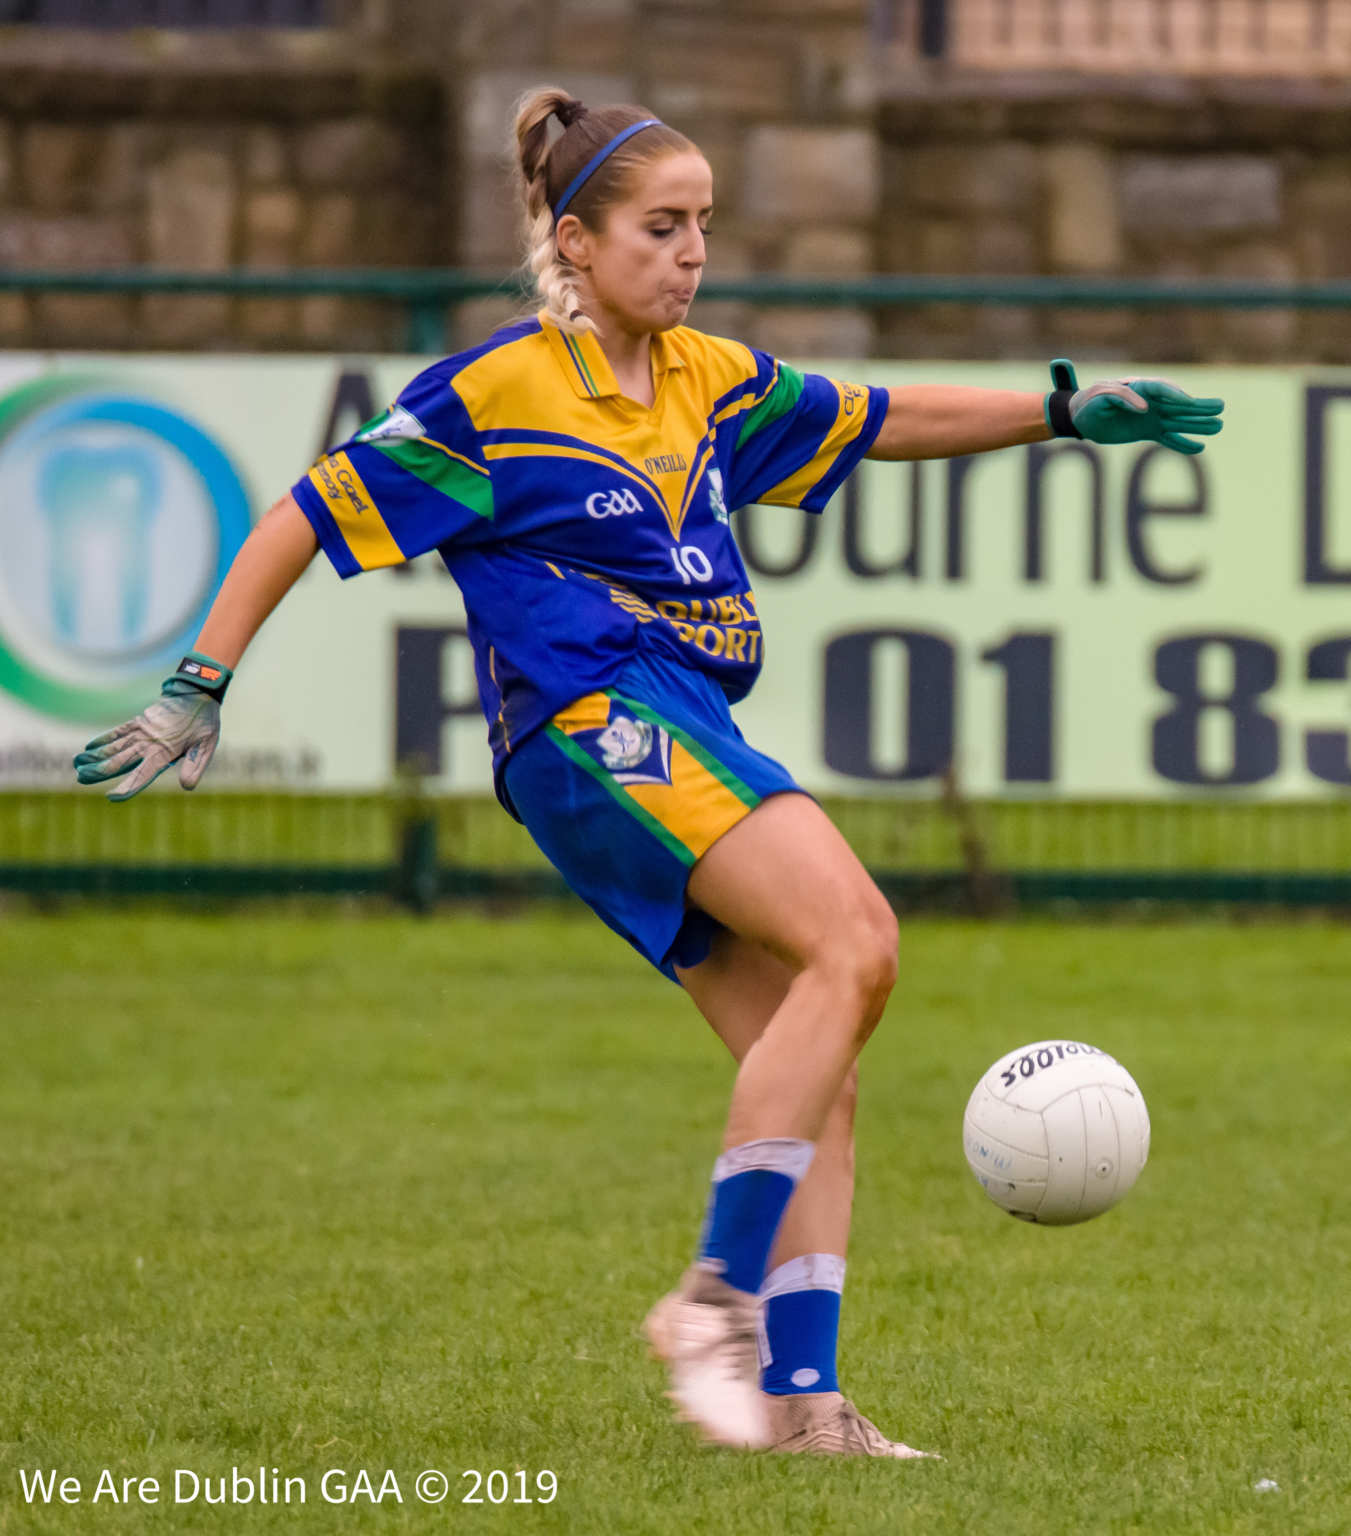 Clanna Gael Fontenoy forward Rebecca McDonnell kicks the ball towards goal during her sides Leinster Ladies Football club championship quarter final